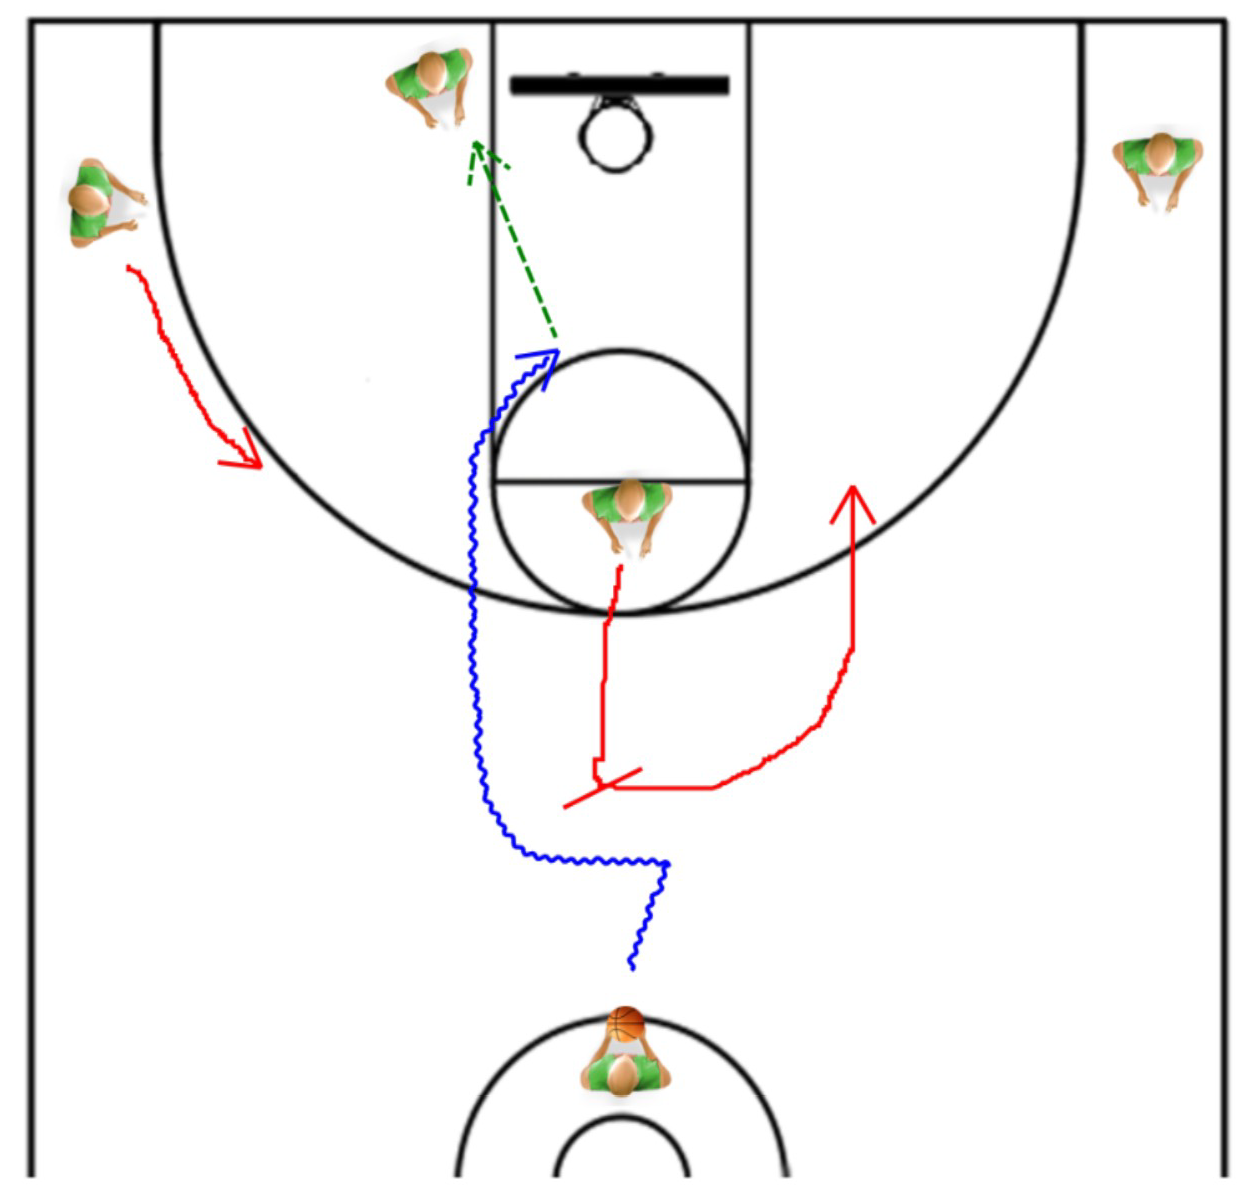 Coaching Pick and Roll Basketball - 2 Vital Plays for your Offense